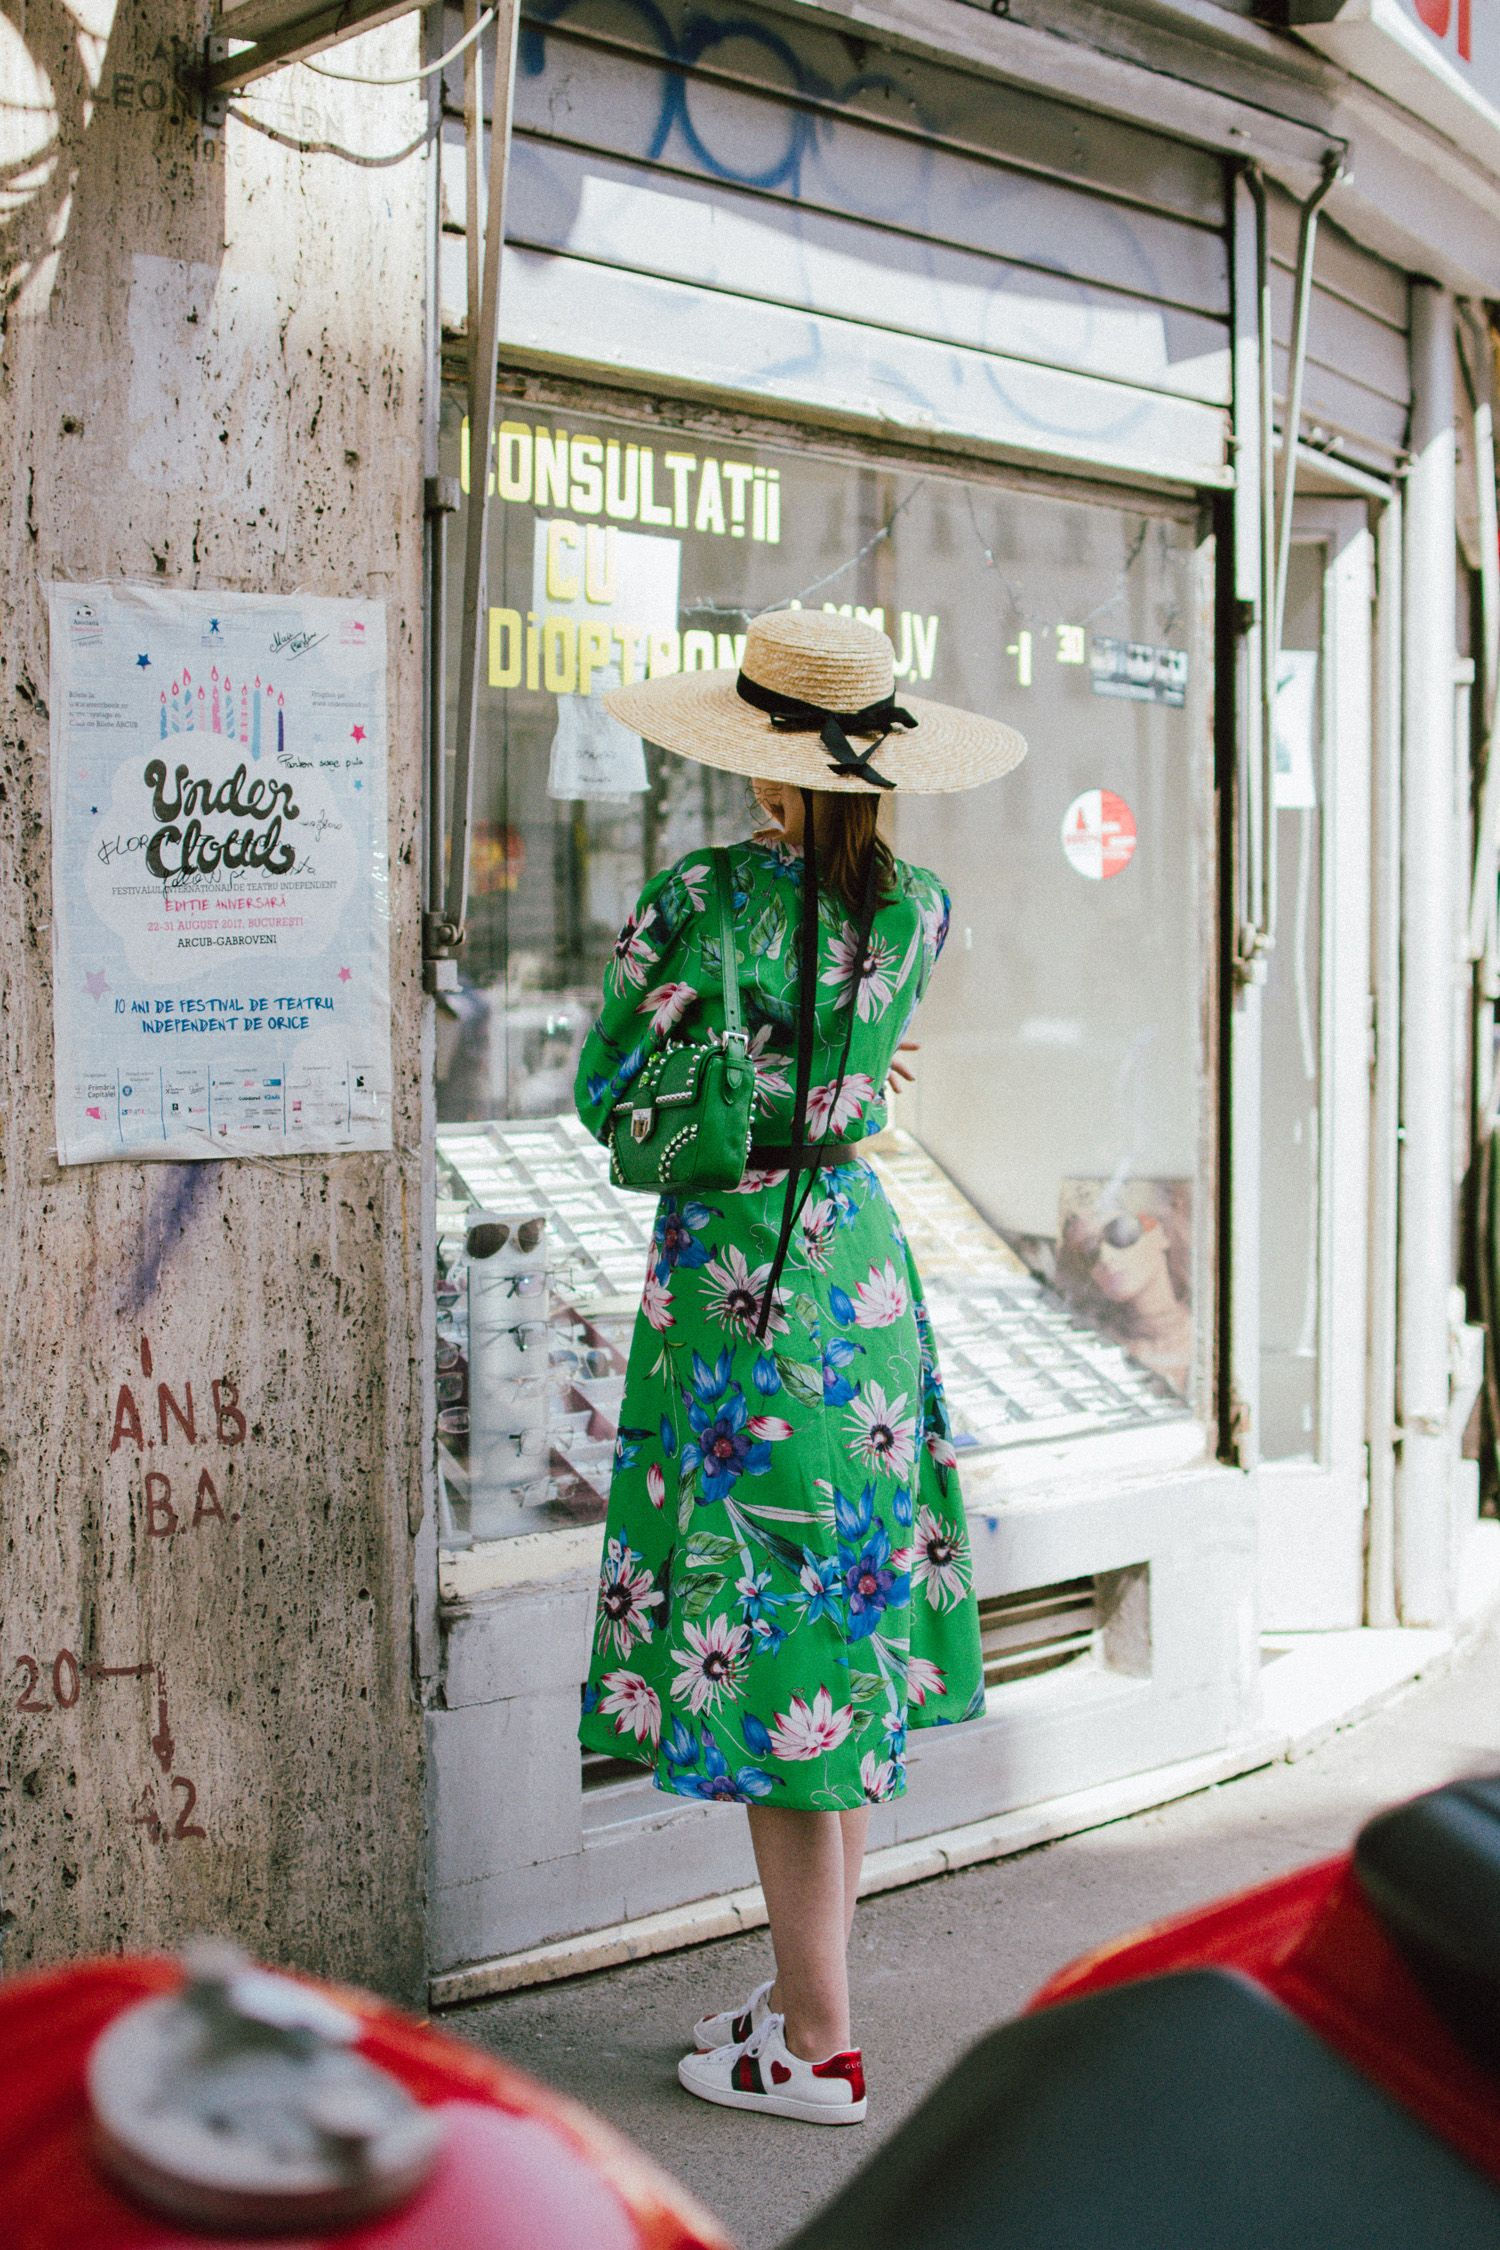 e35b69aed1afd Green midi floral dress, gucci ace heart embroidered sneakers, prada green  leather shoulder bag, mango big straw hat, andreea birsan, couturezilla, ...